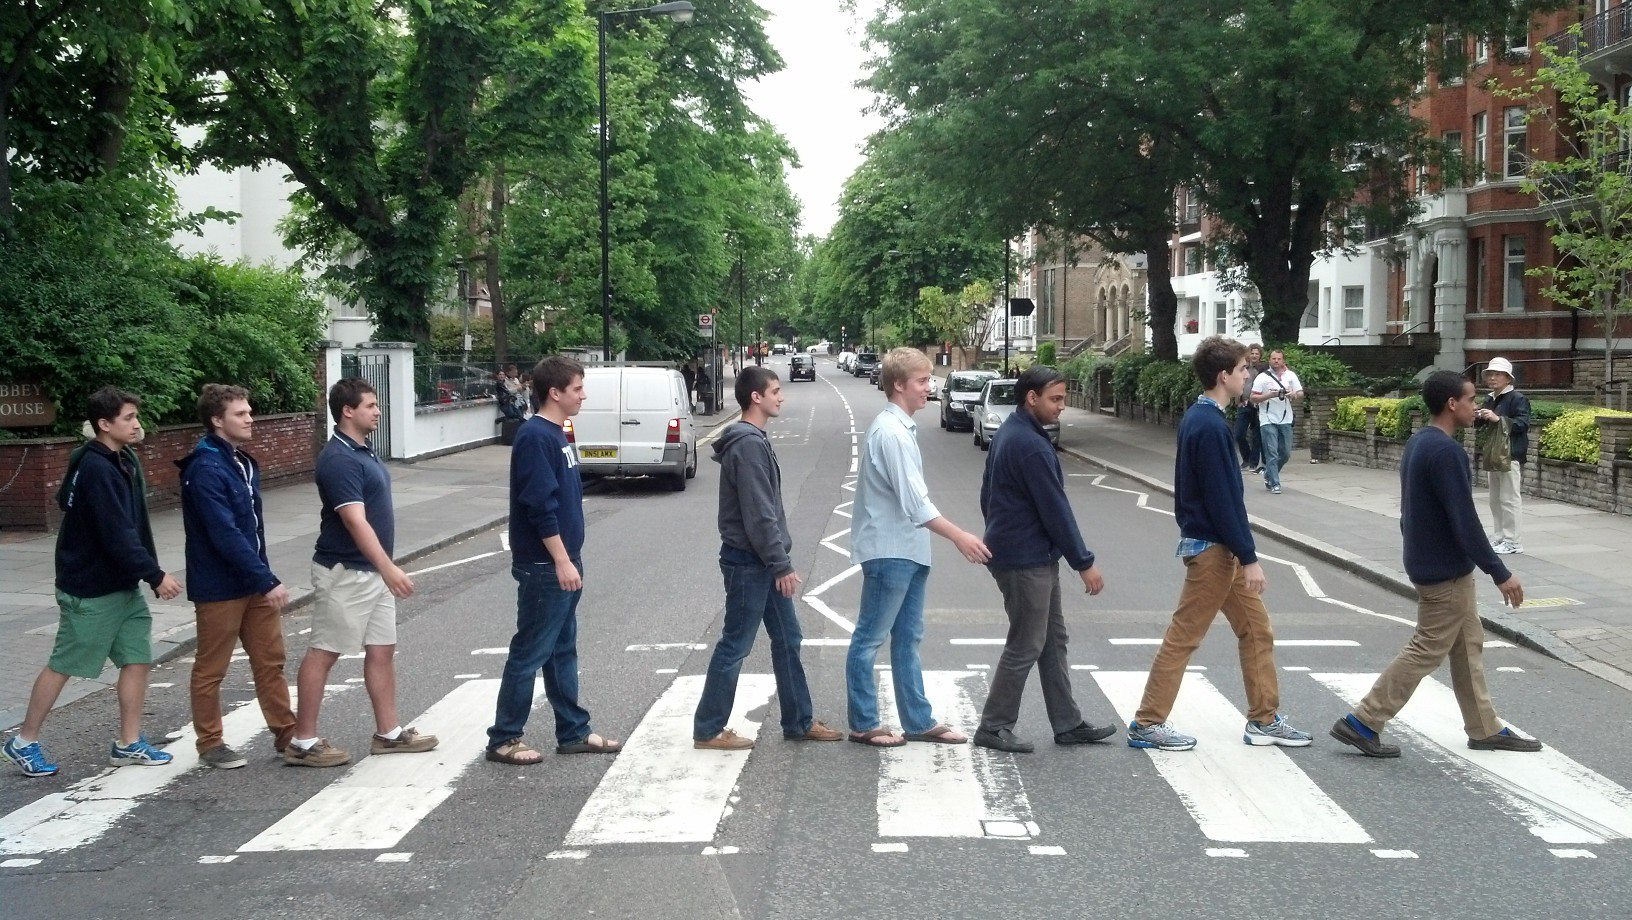 Abbey Road - London